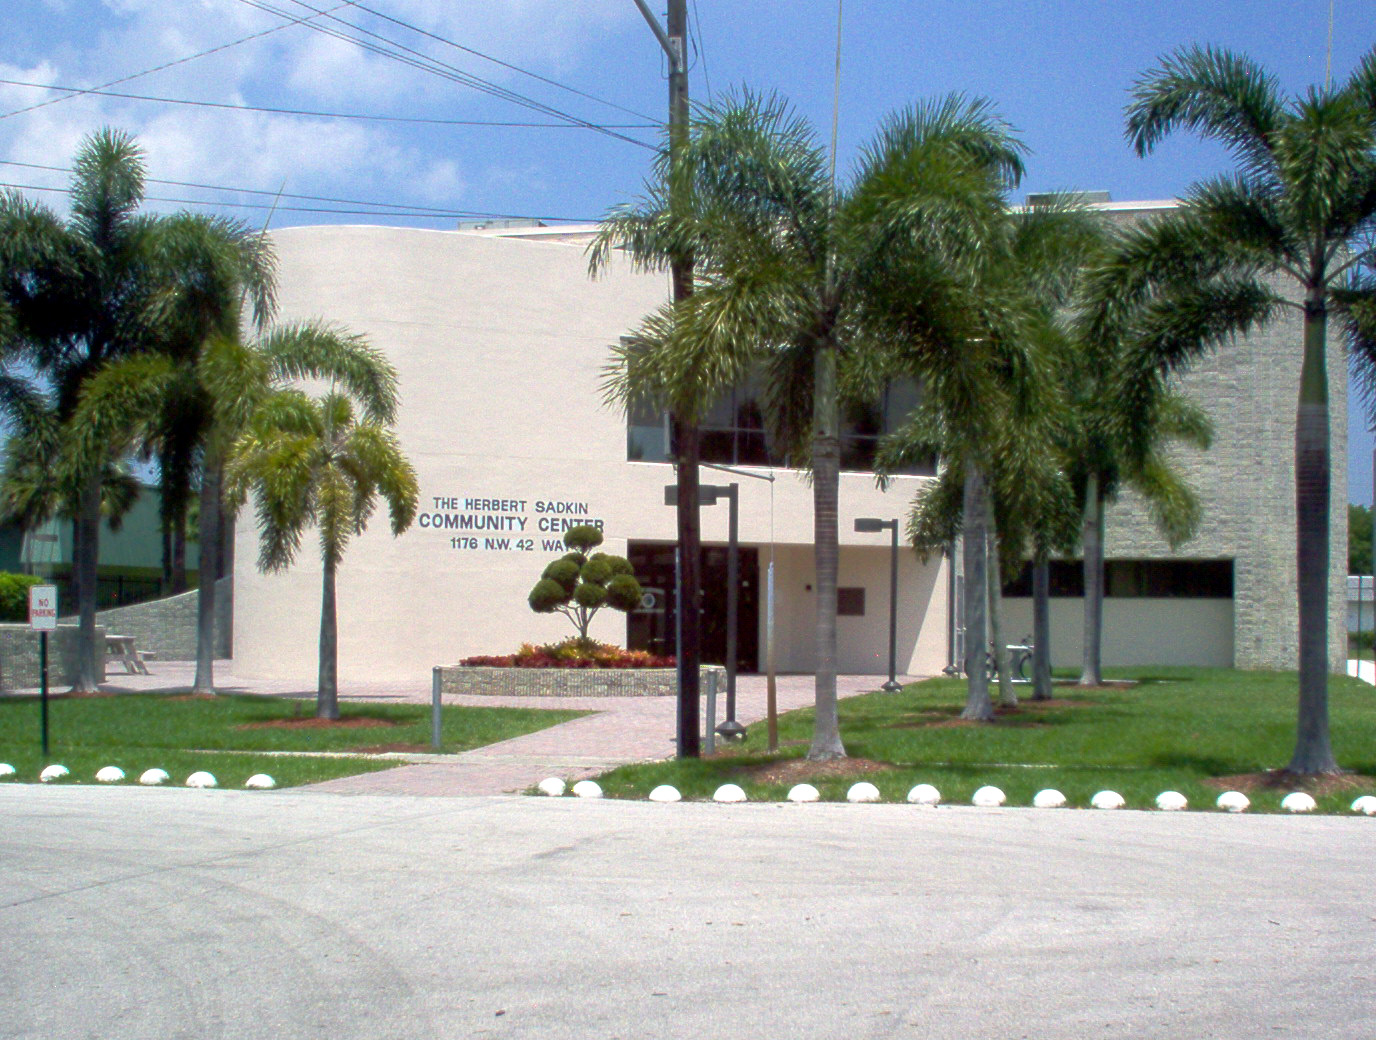 The Herbert Sadkin Community Center